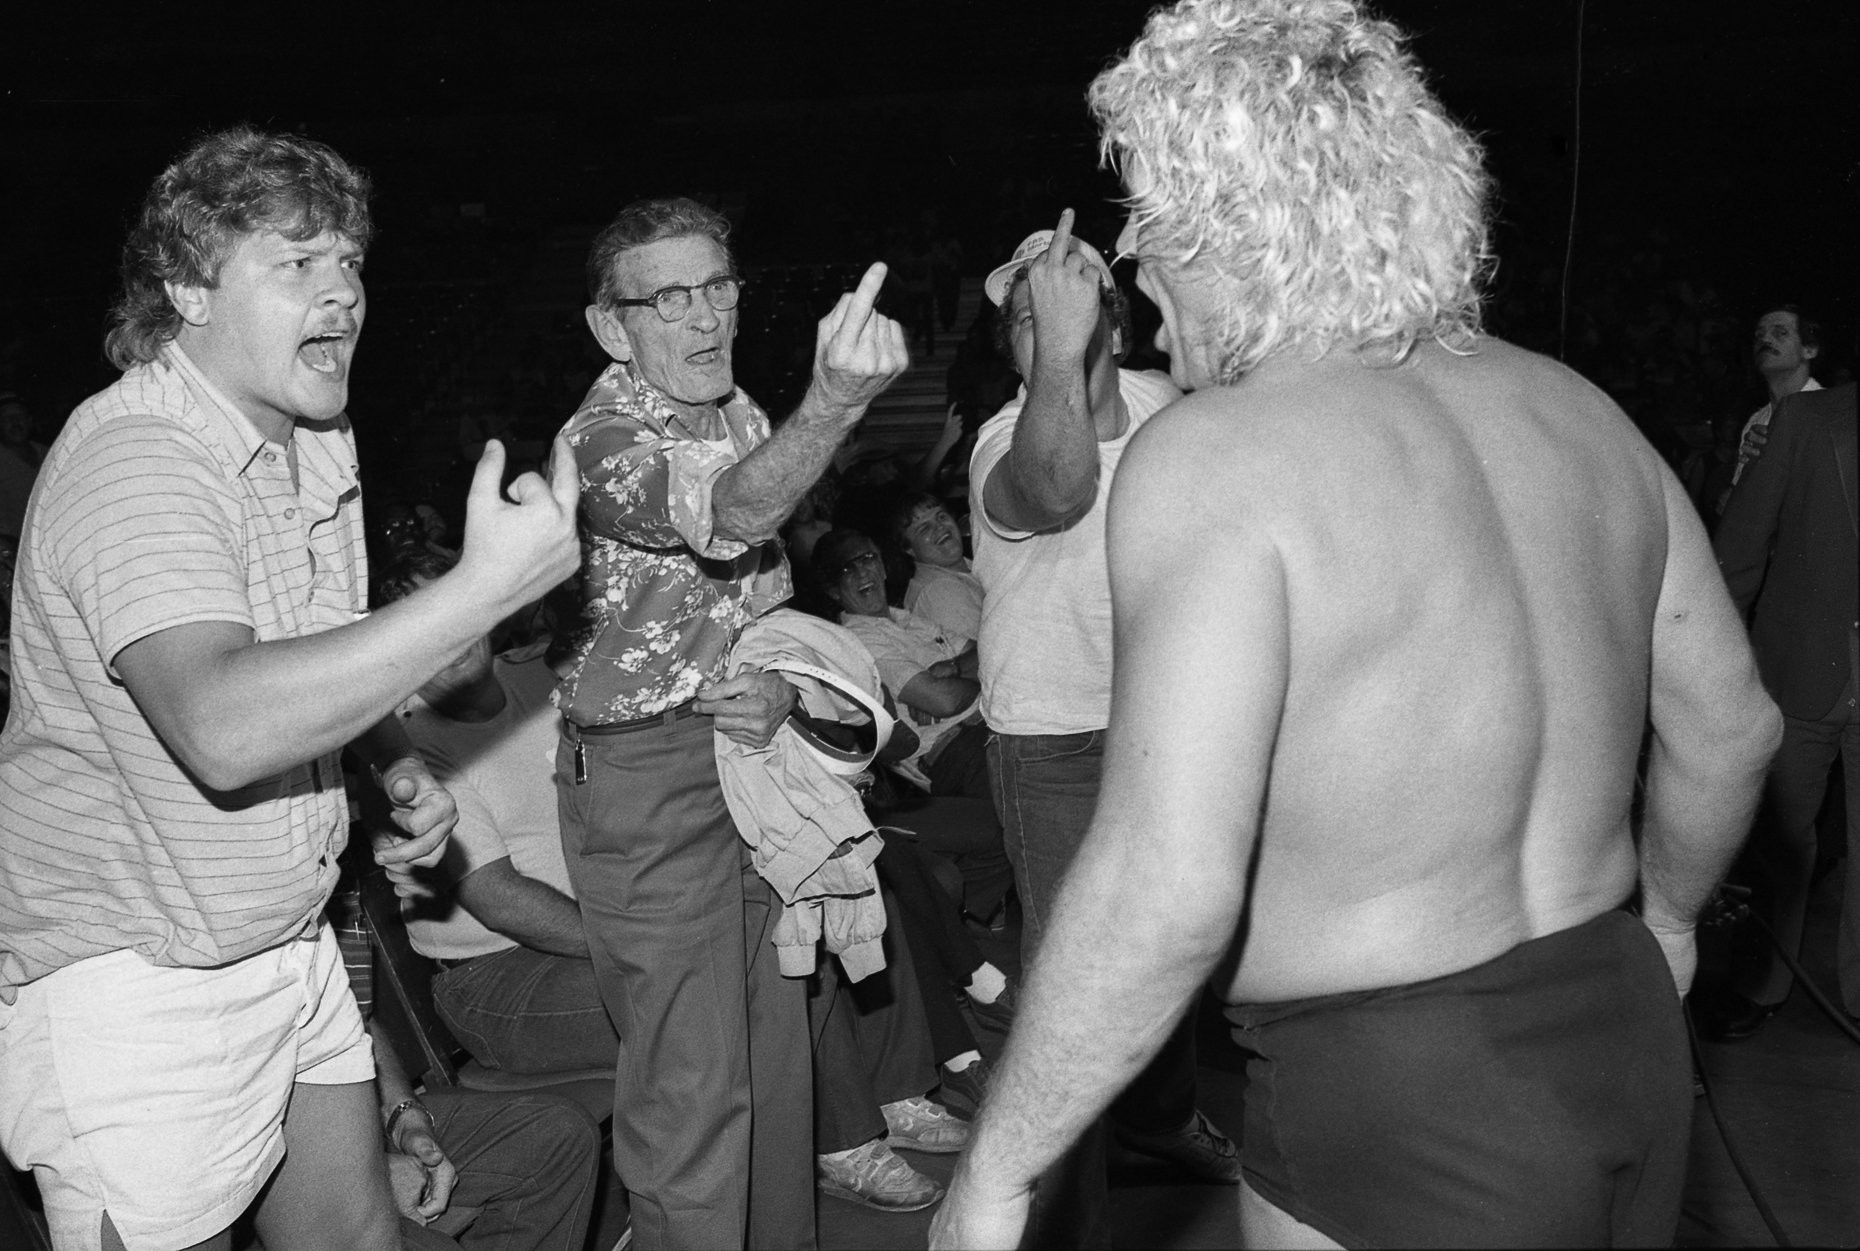 Capturing All-Star Wrestling's Heyday